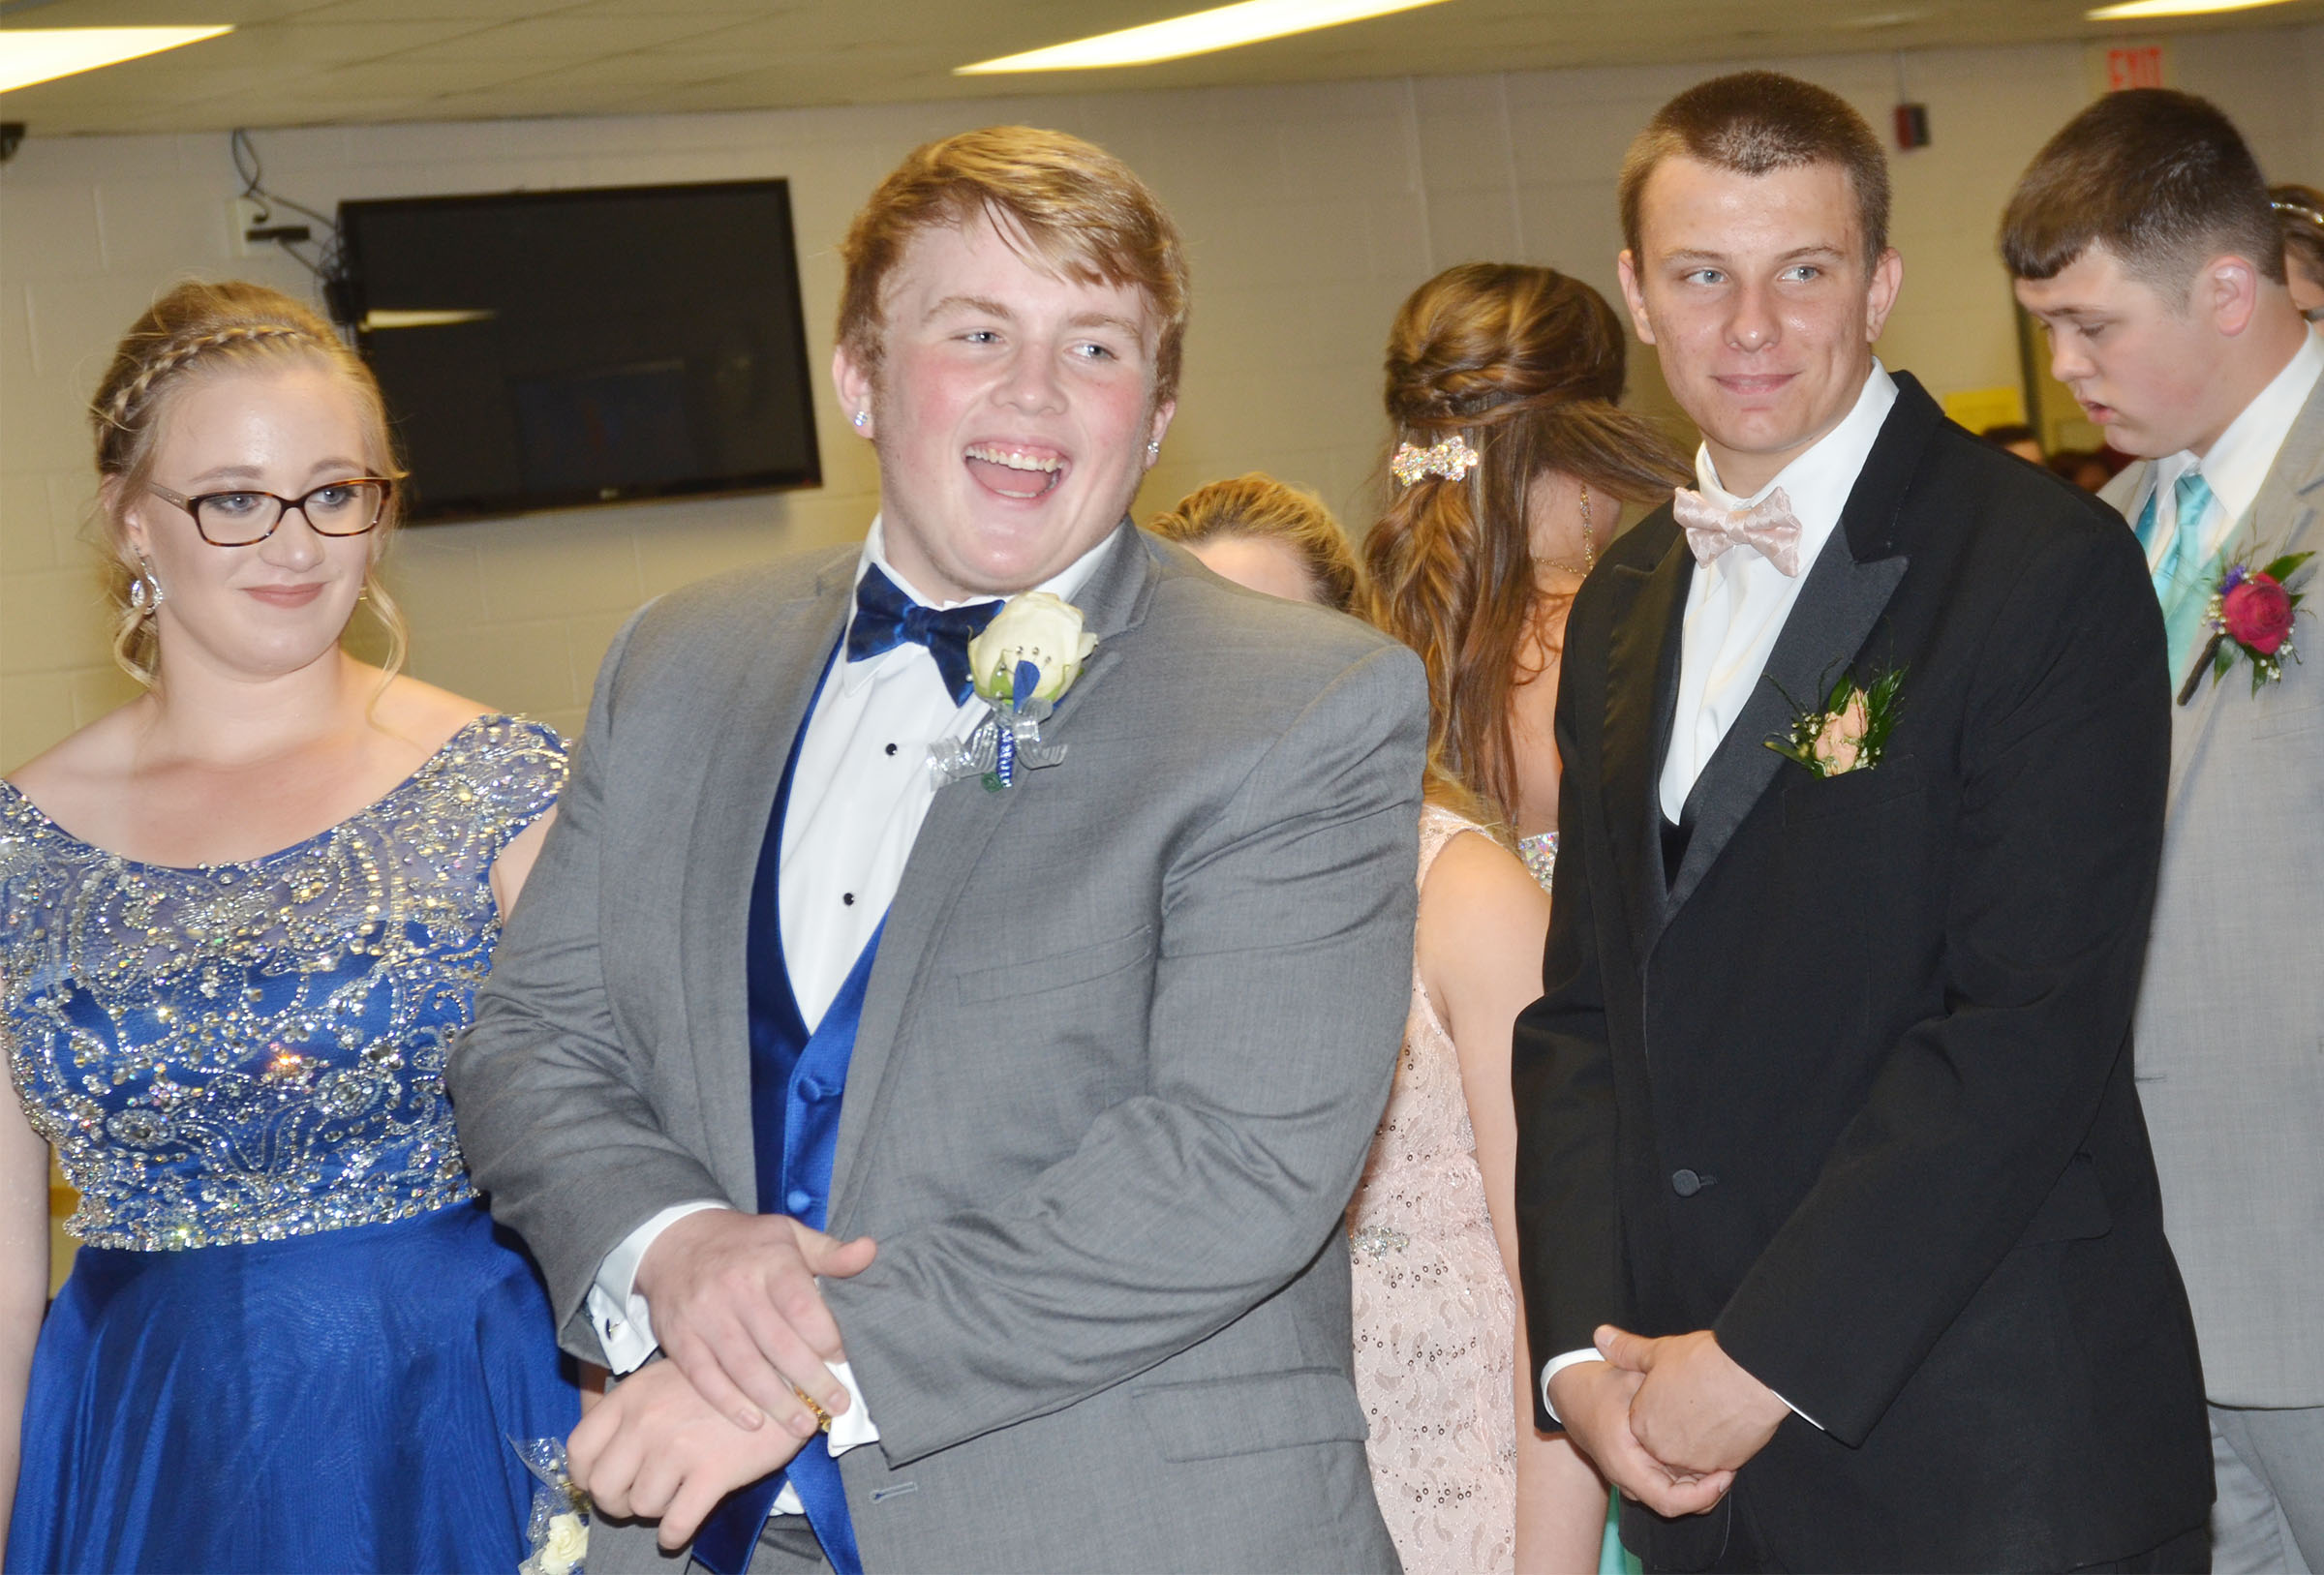 CHS junior Ryan Jeffries talks with his friends as he and his date, CHS freshman Samantha Johnson, wait to have their photo taken.